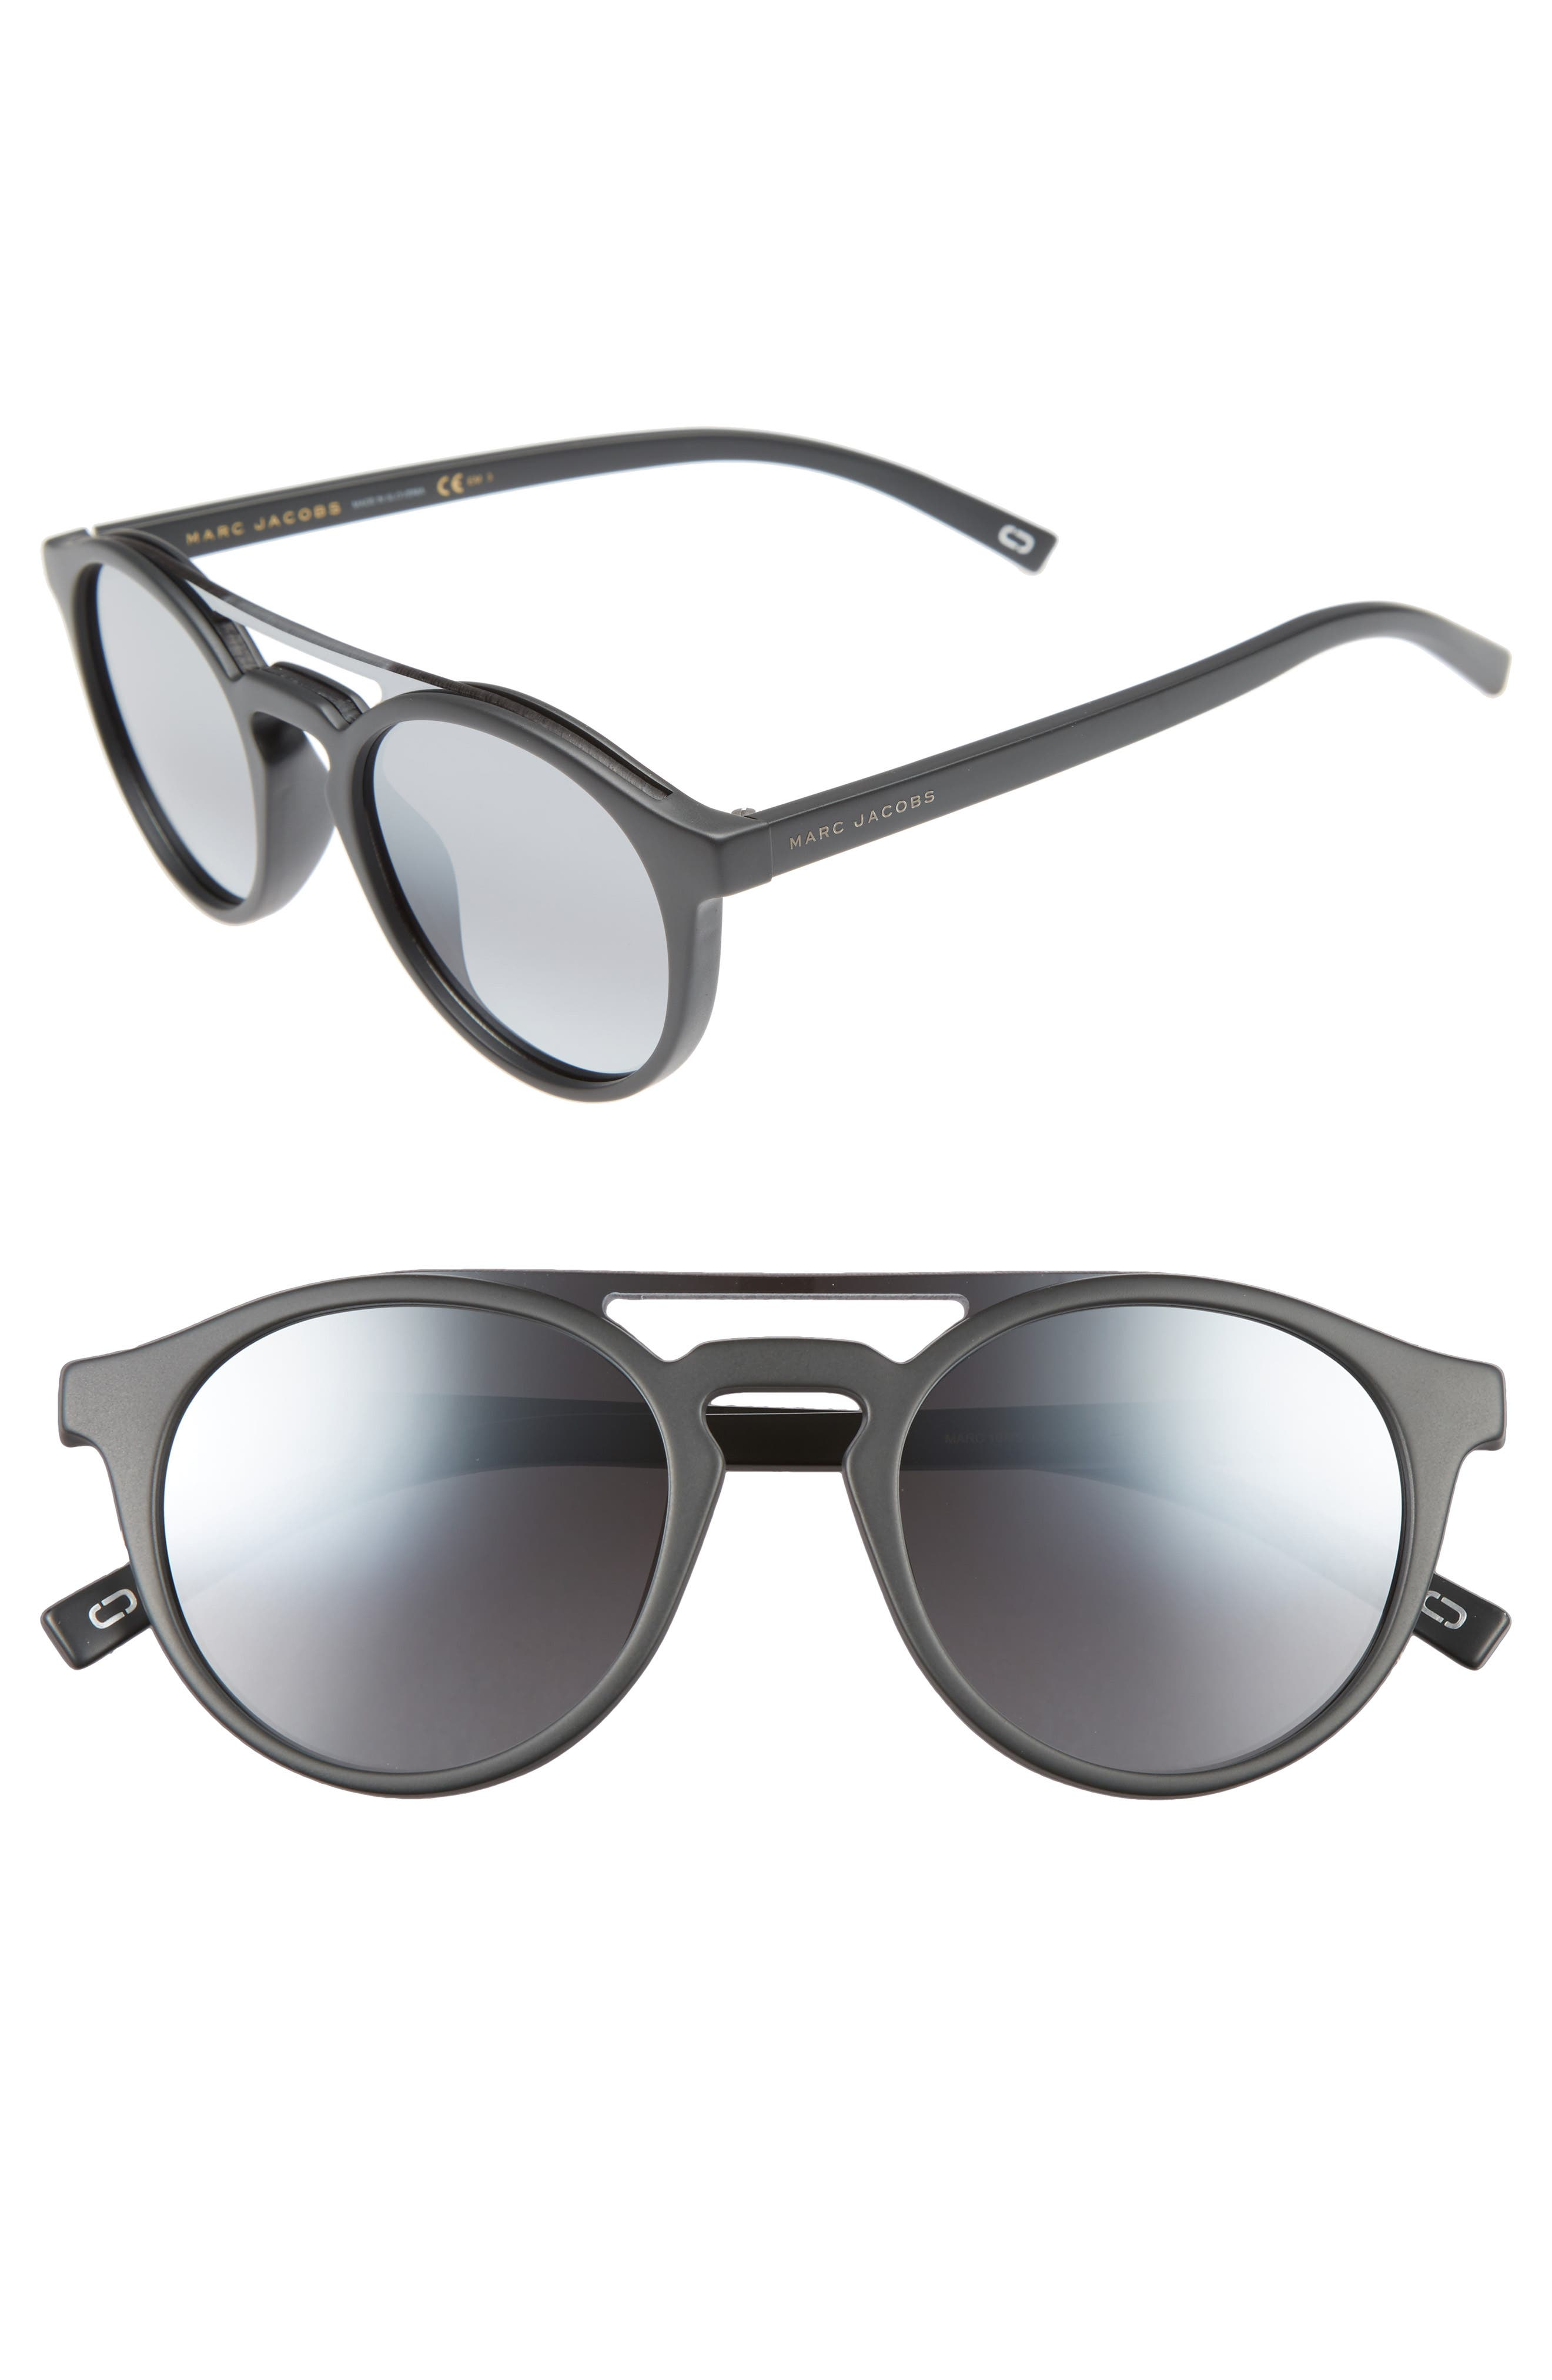 MARC JACOBS 99mm Round Brow Bar Sunglasses